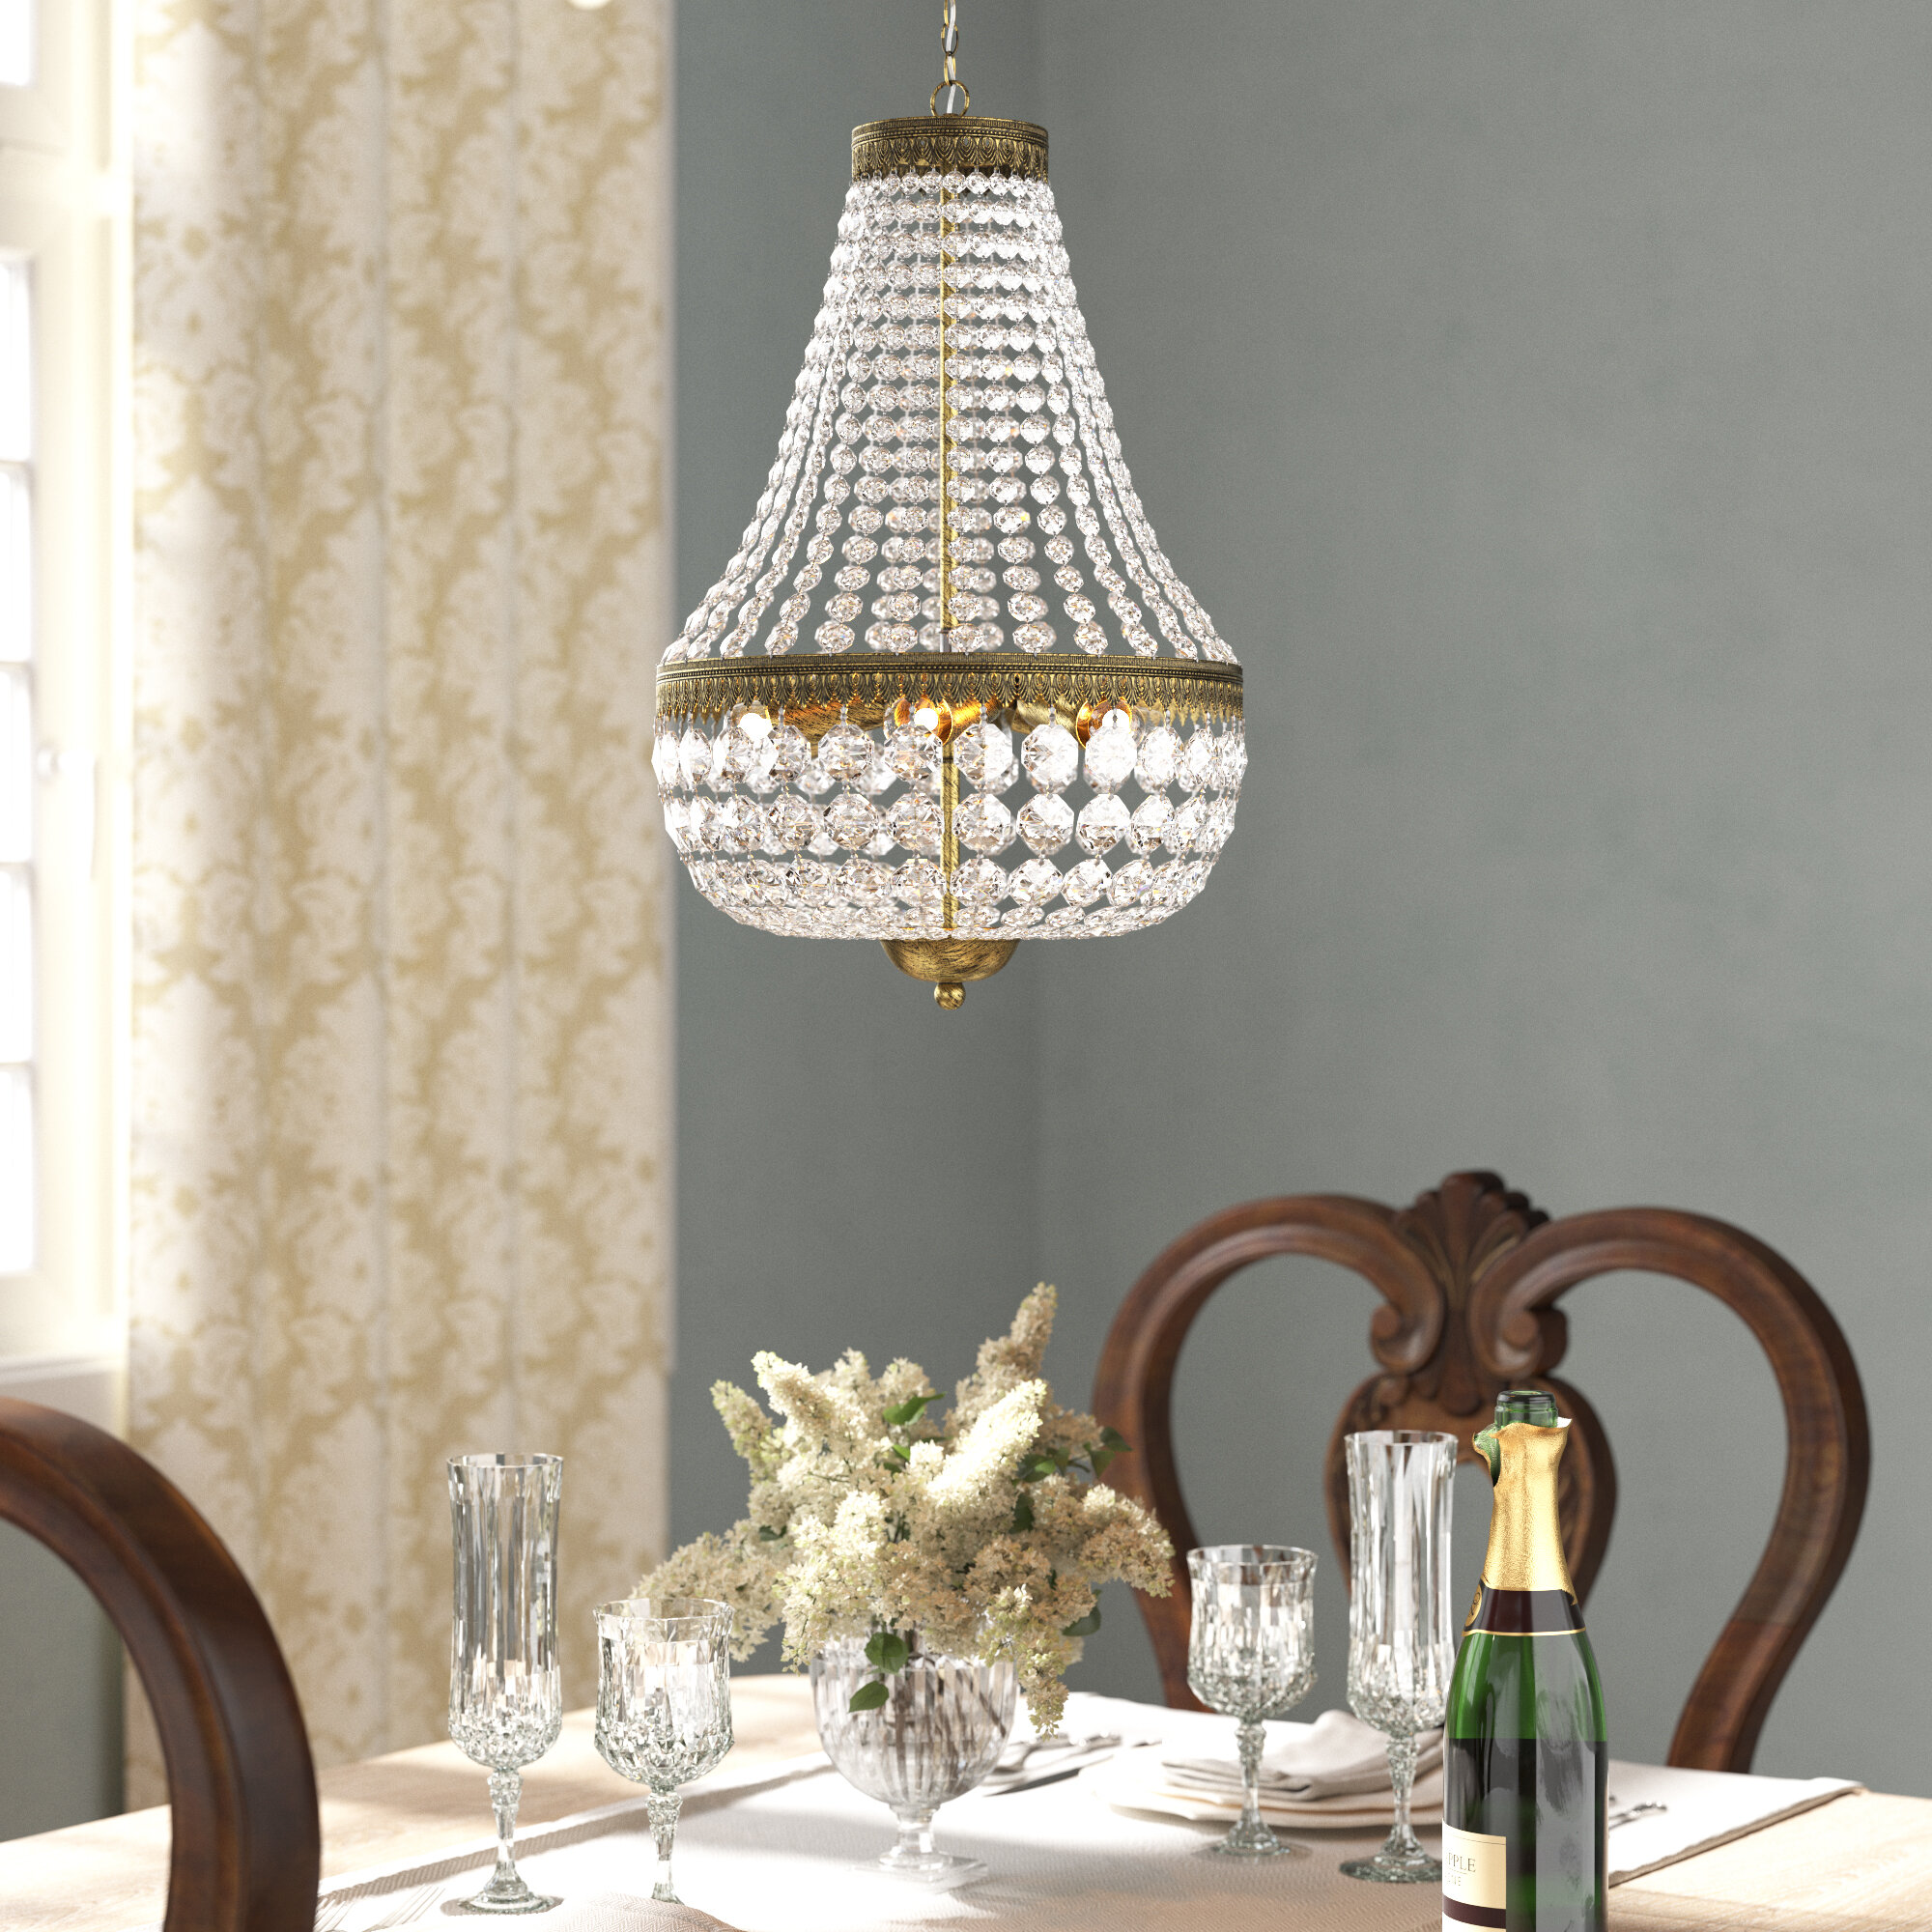 Astoria Grand Gartner 6 Light Unique Statement Empire Chandelier With Crystal Accents Reviews Wayfair